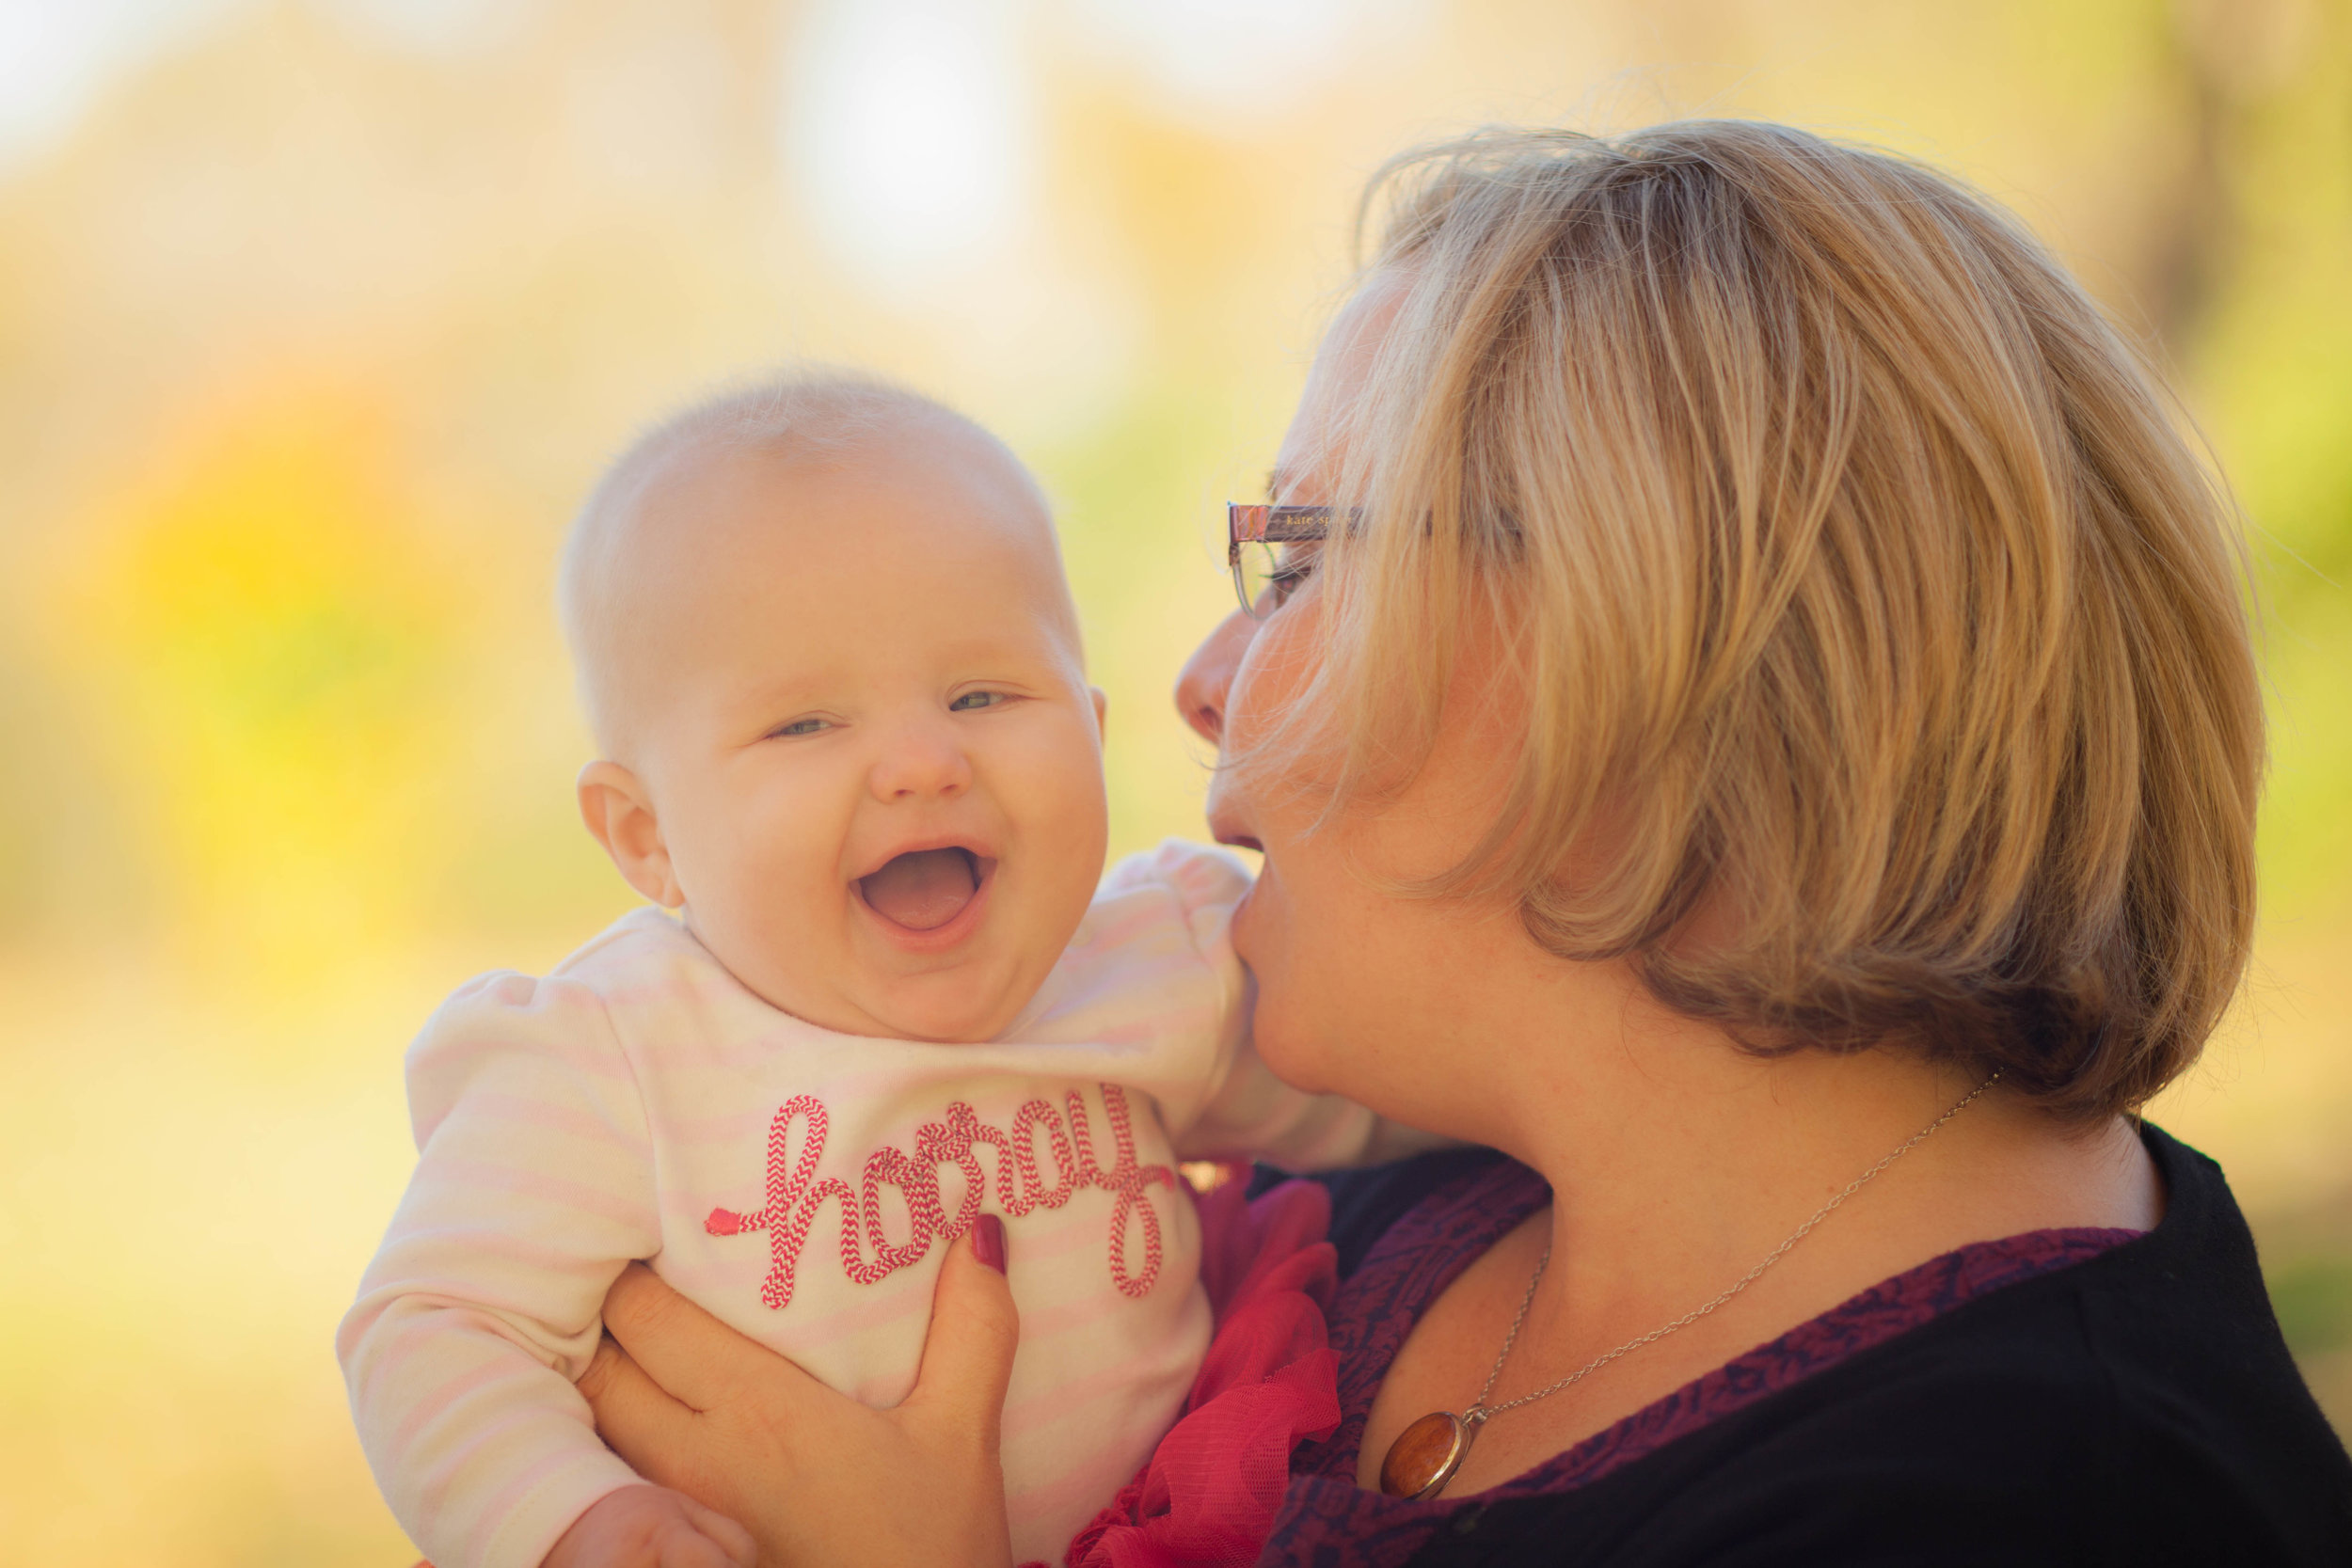 mother and daughter portrait photography, chicago